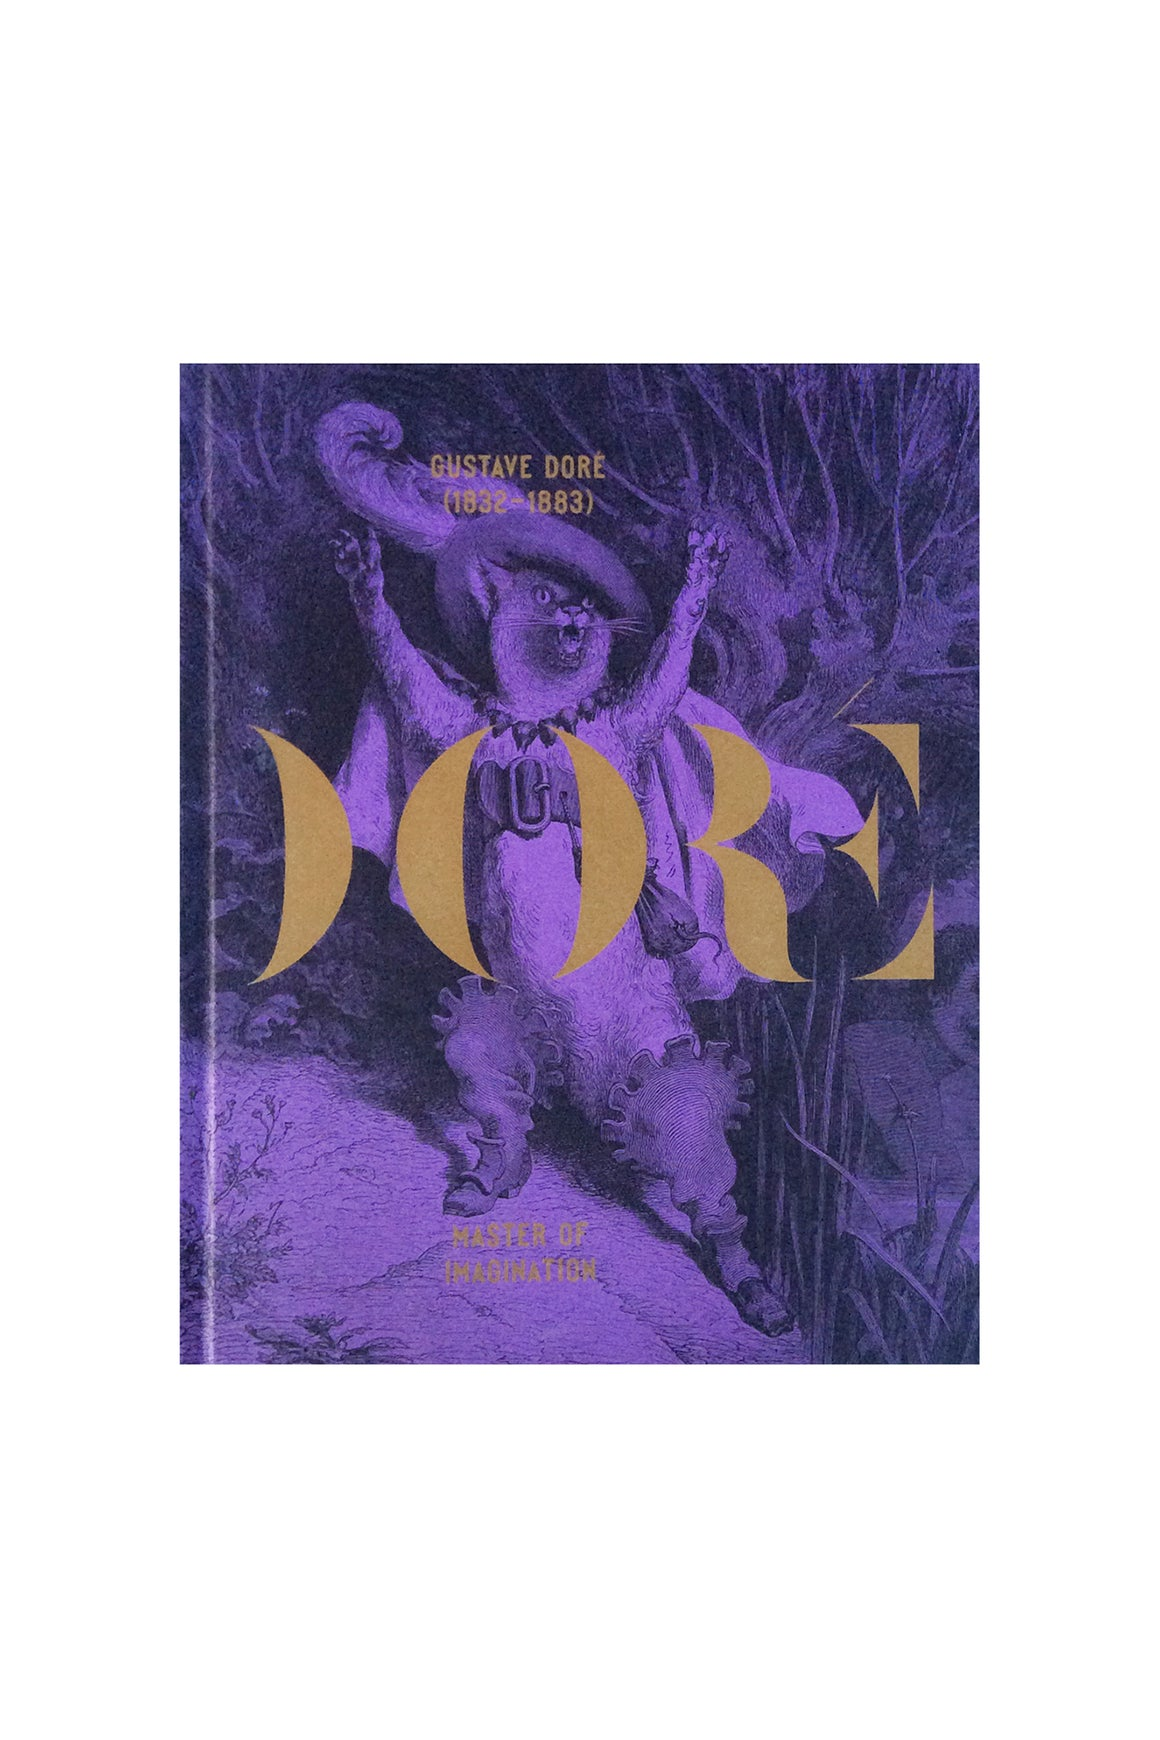 Gustave Doré: Master of Imagination - Art Monograph